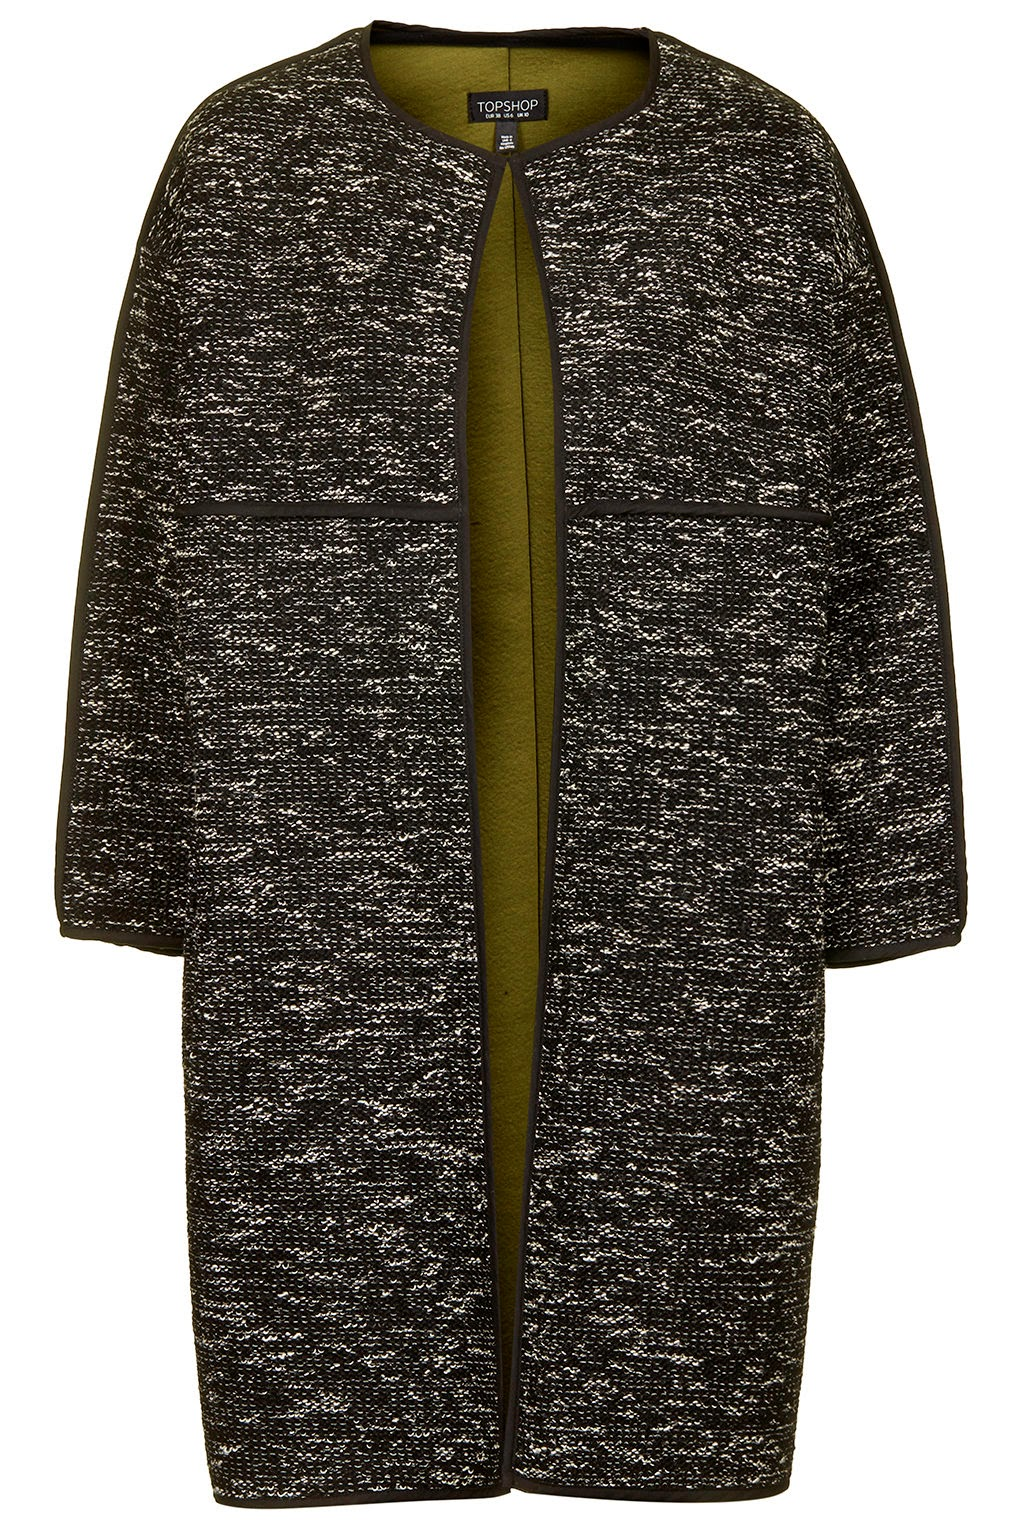 topshop blanket coat